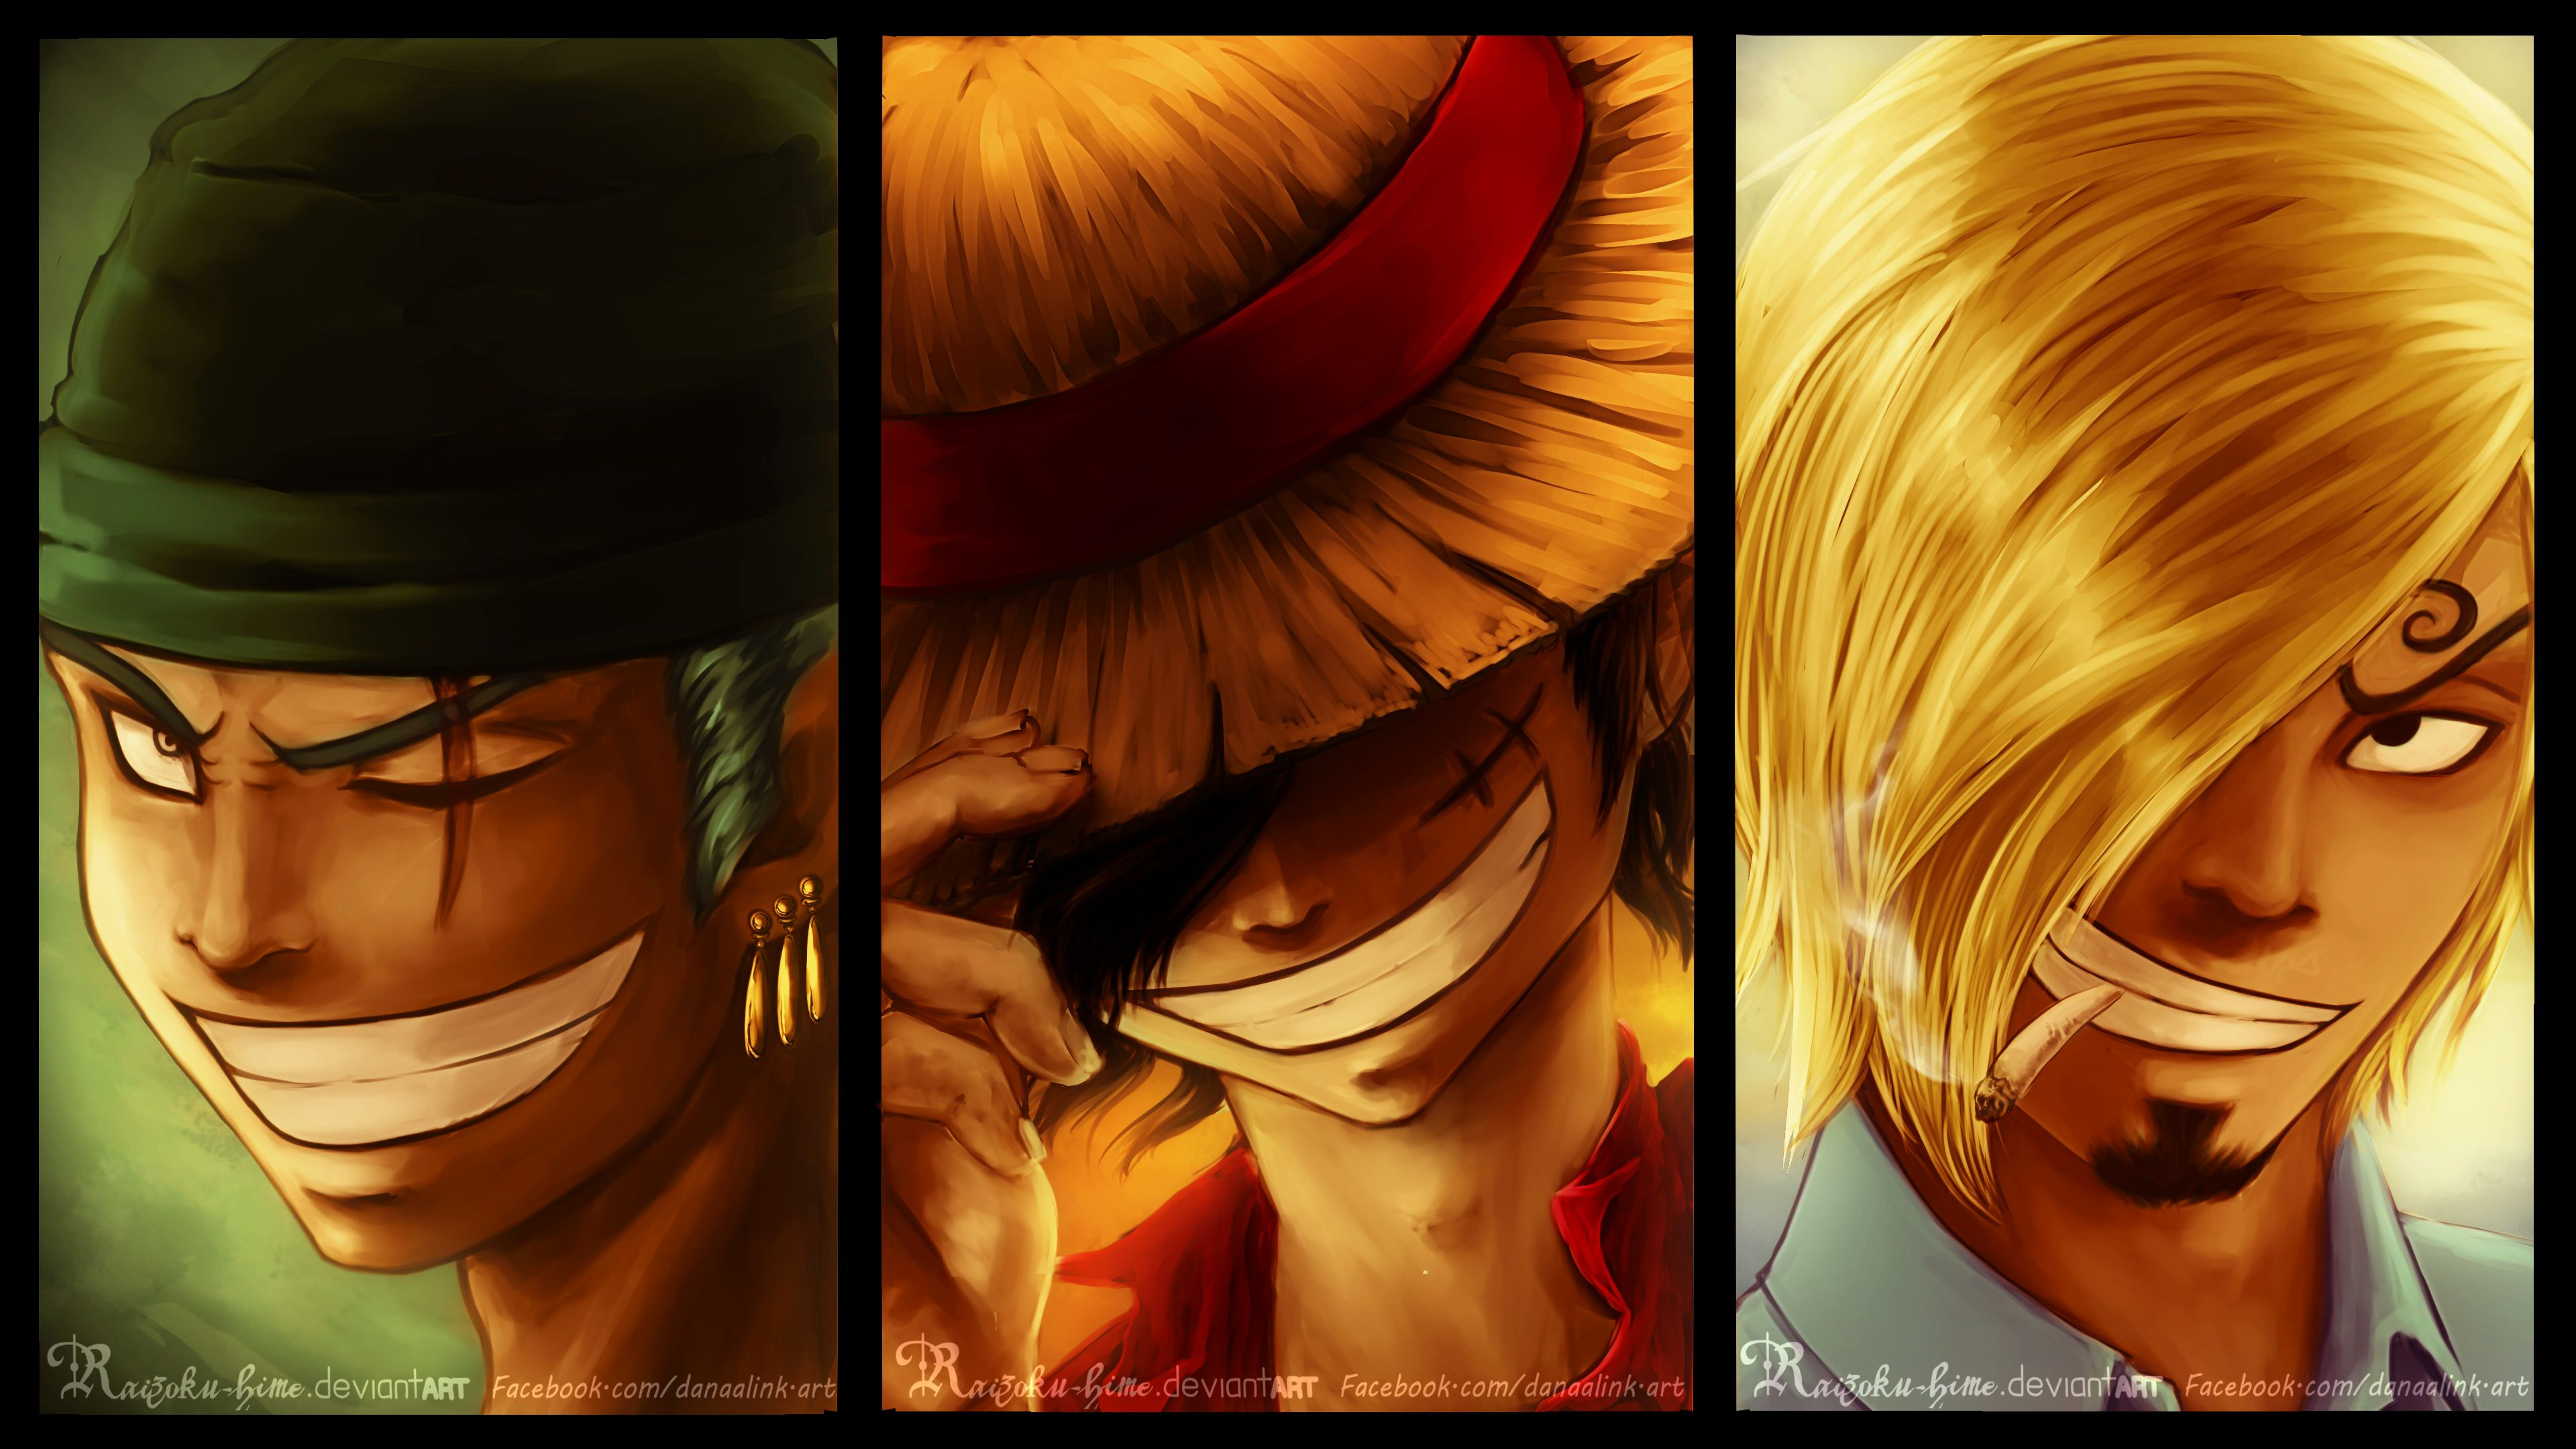 Luffy Zoro Sanji Wallpapers Top Free Luffy Zoro Sanji Backgrounds Wallpaperaccess